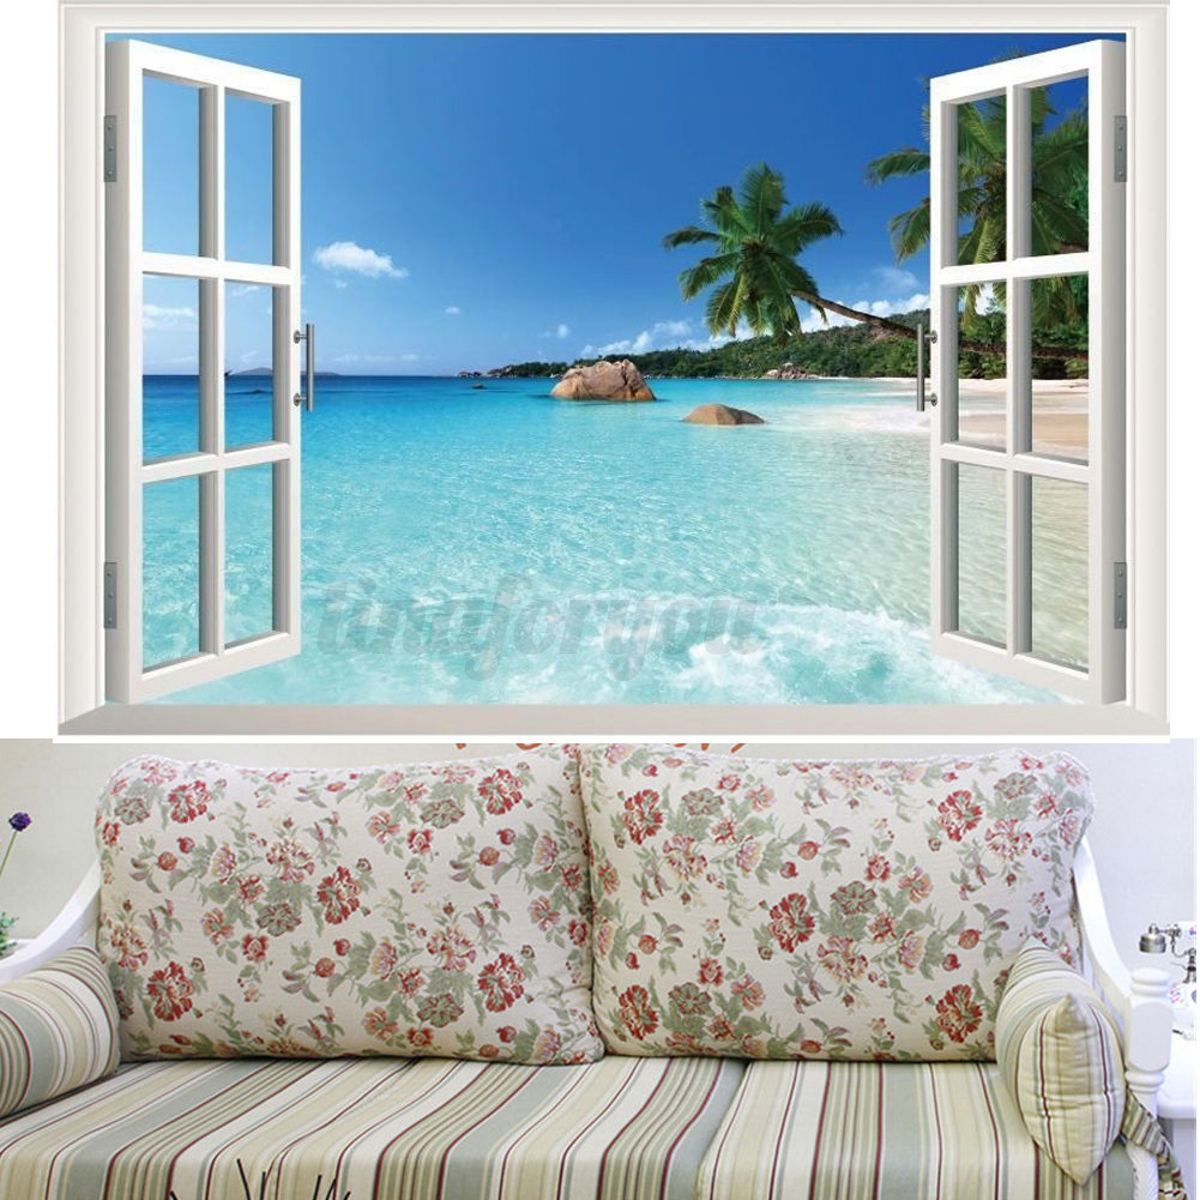 Beach window view scenery 3d wall stickers vinyl art mural for Beach wall mural decals